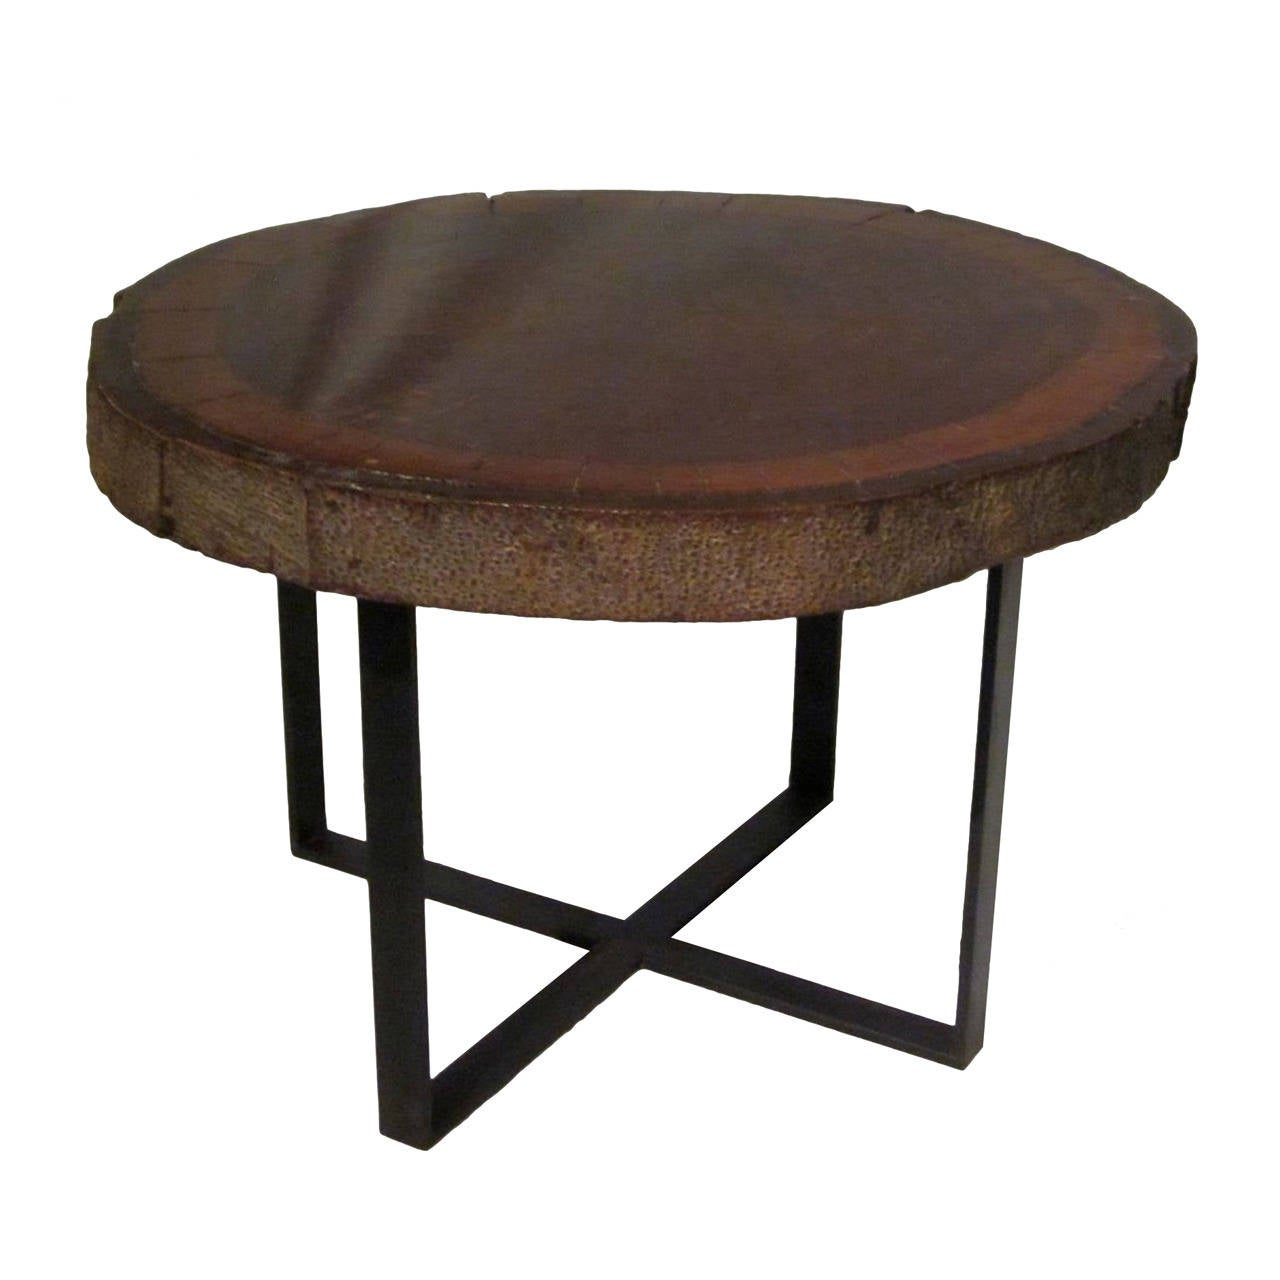 1940s wood slice coffee table at 1stdibs for K furniture coffee table